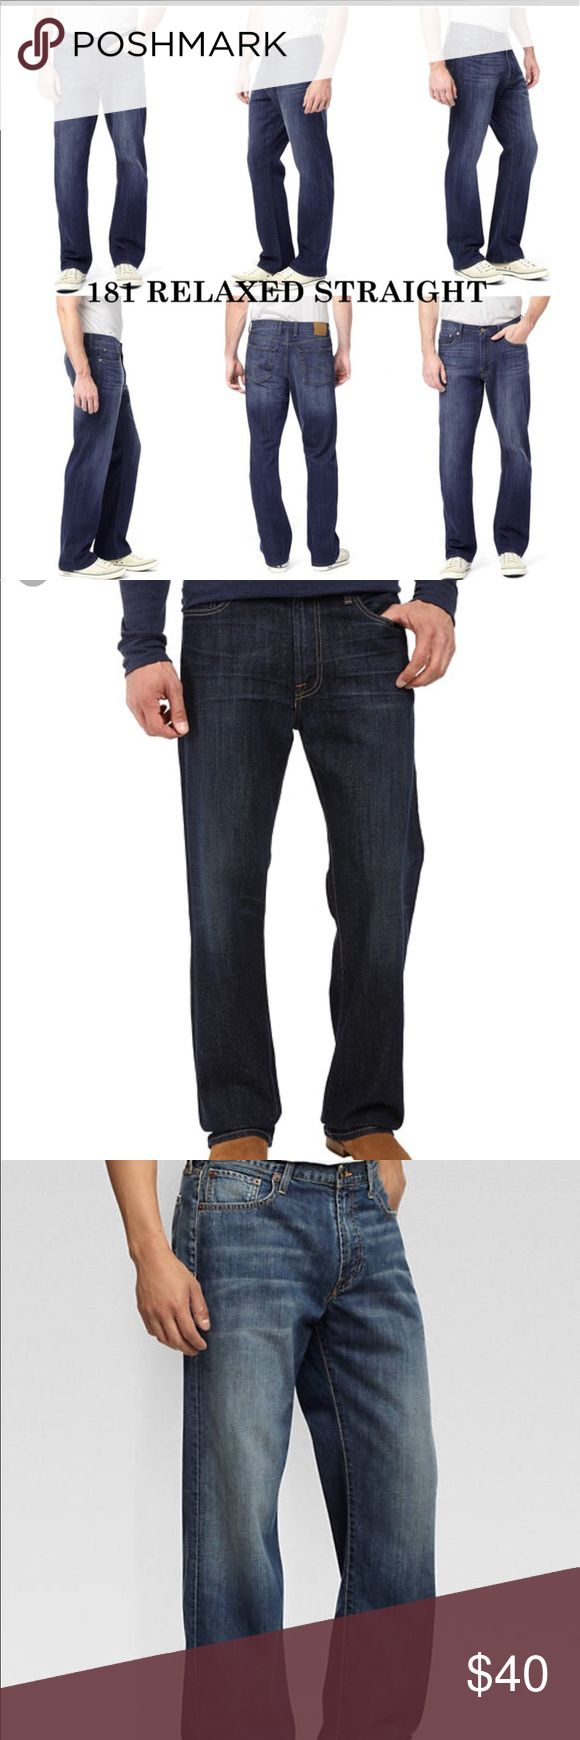 Lucky Brand relaxed jeans Locky brand 181 relaxed fit 38x32 mint condition. Sh op and feel good about it 😁. Part of the money u spend goes to Purple Heart Foundation 💜) Lucky Brand Jeans Relaxed